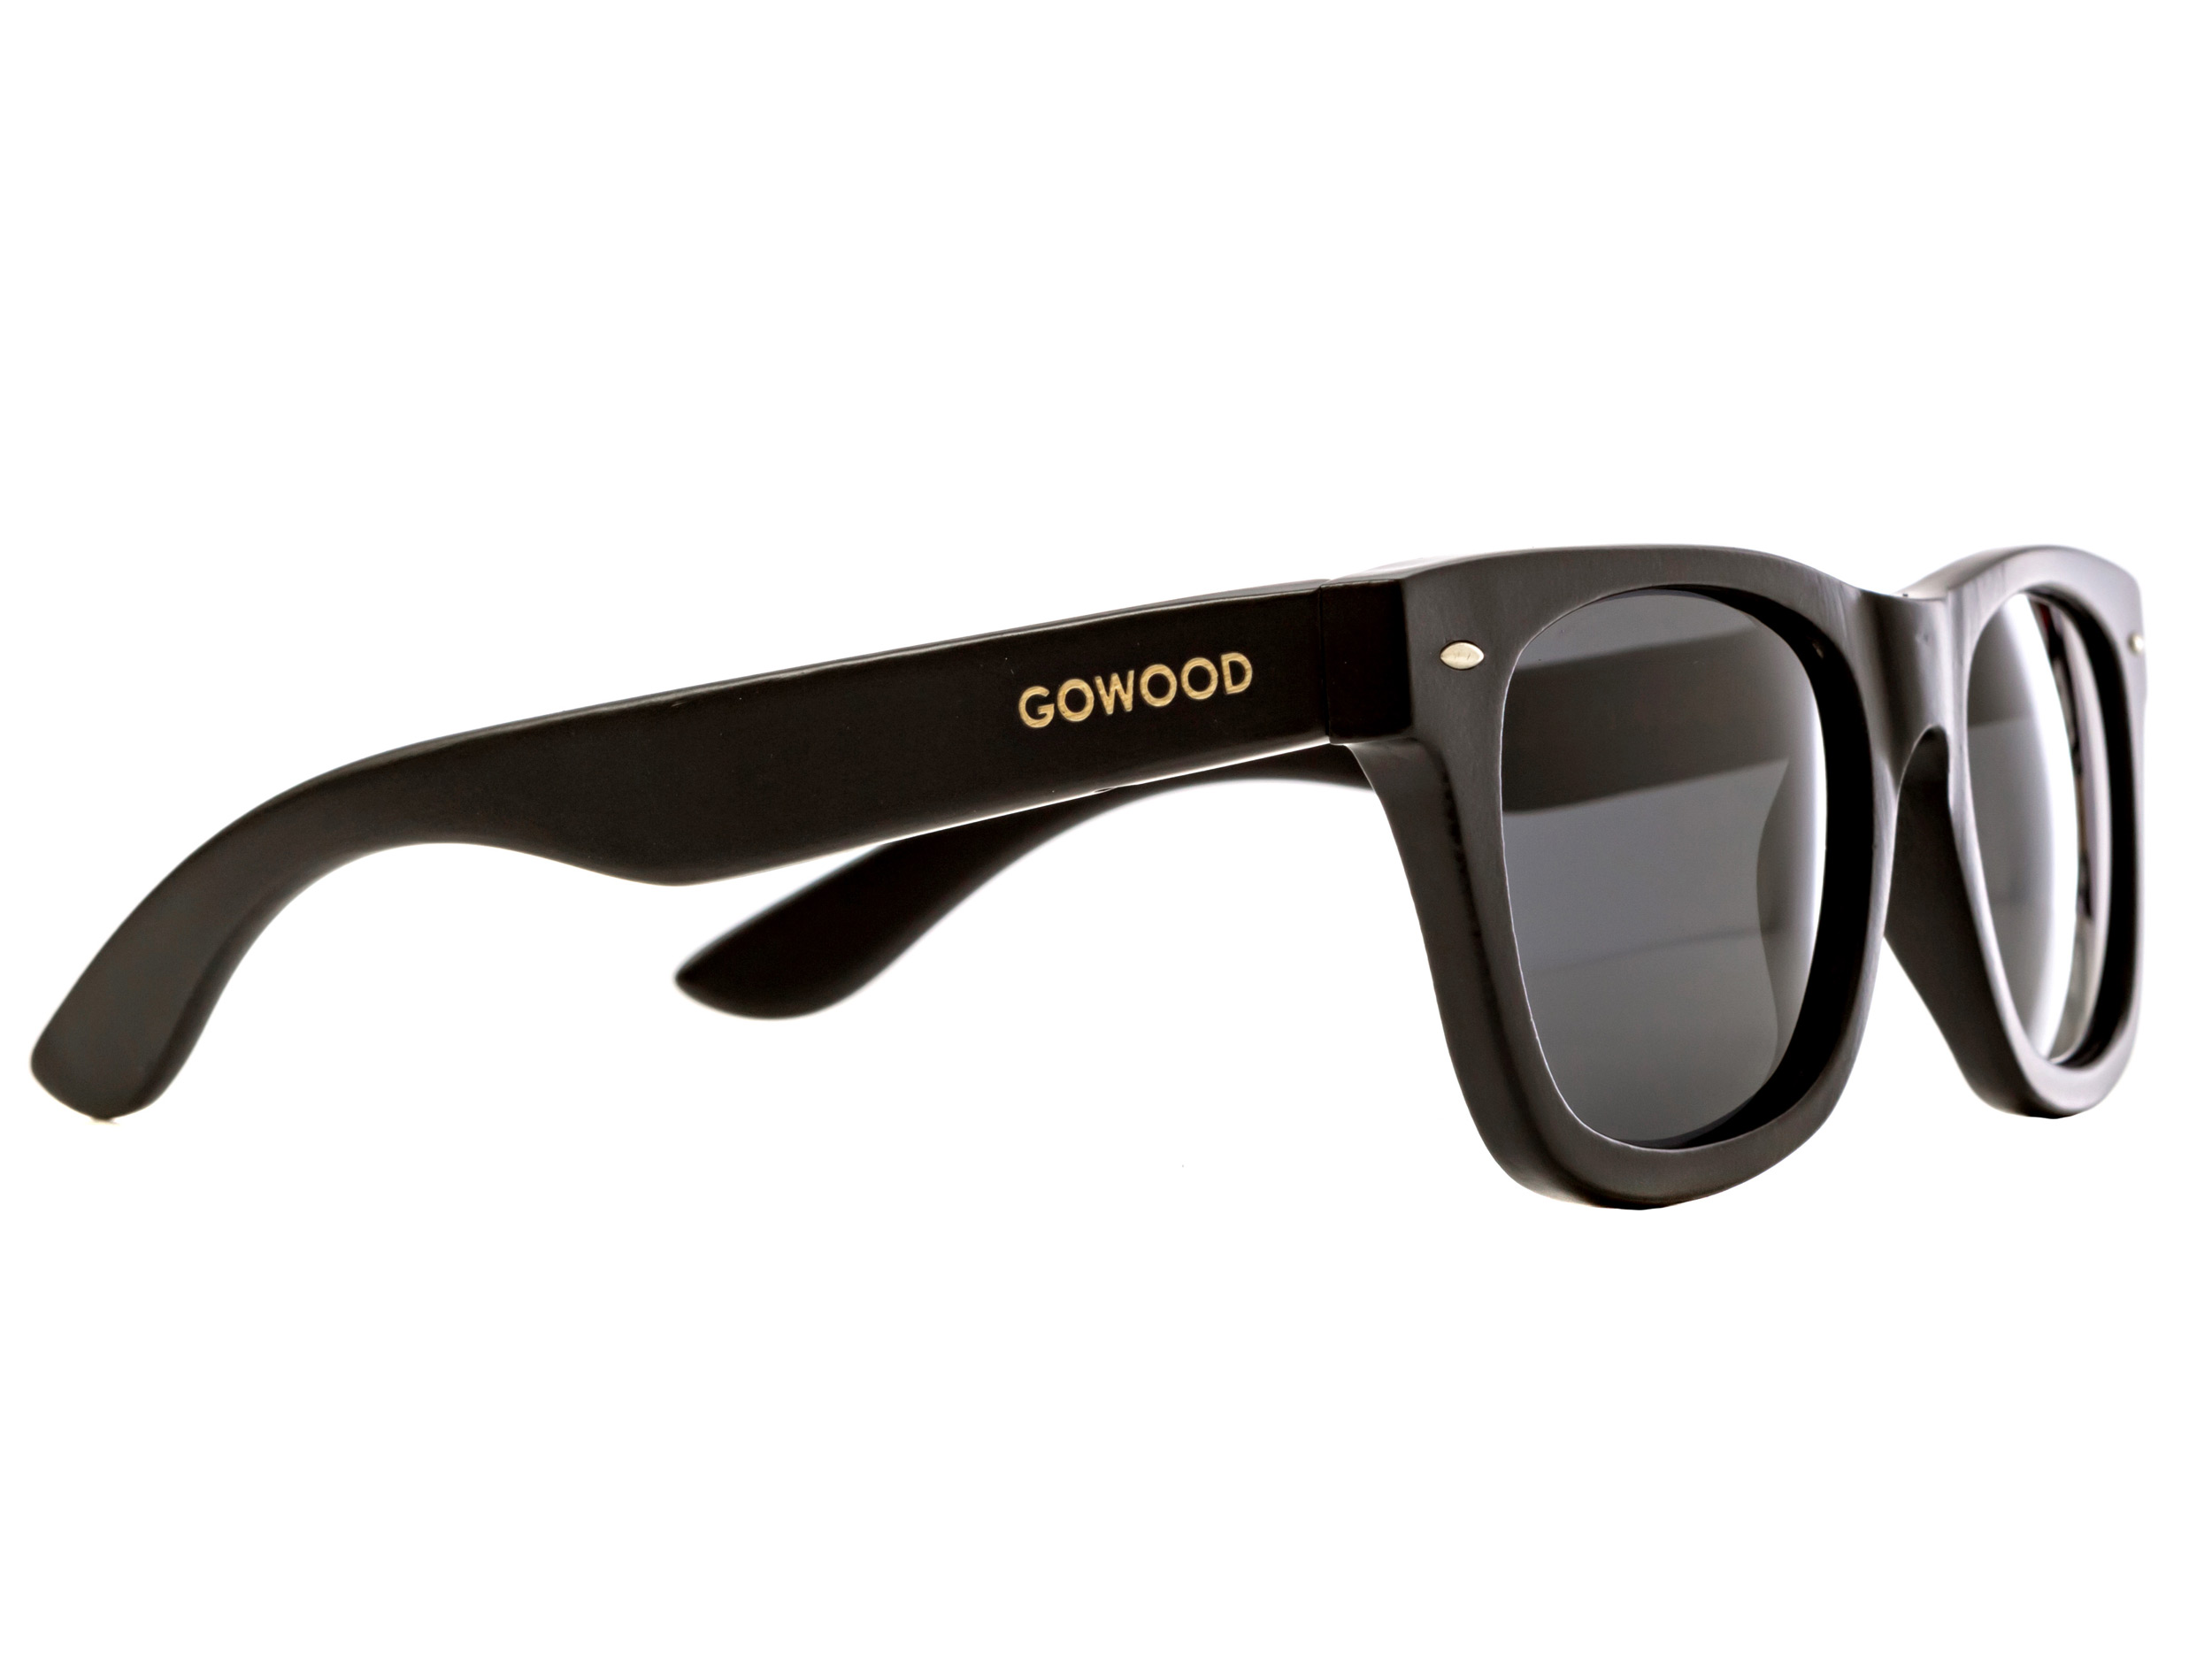 wayfarer style sunglasses black side